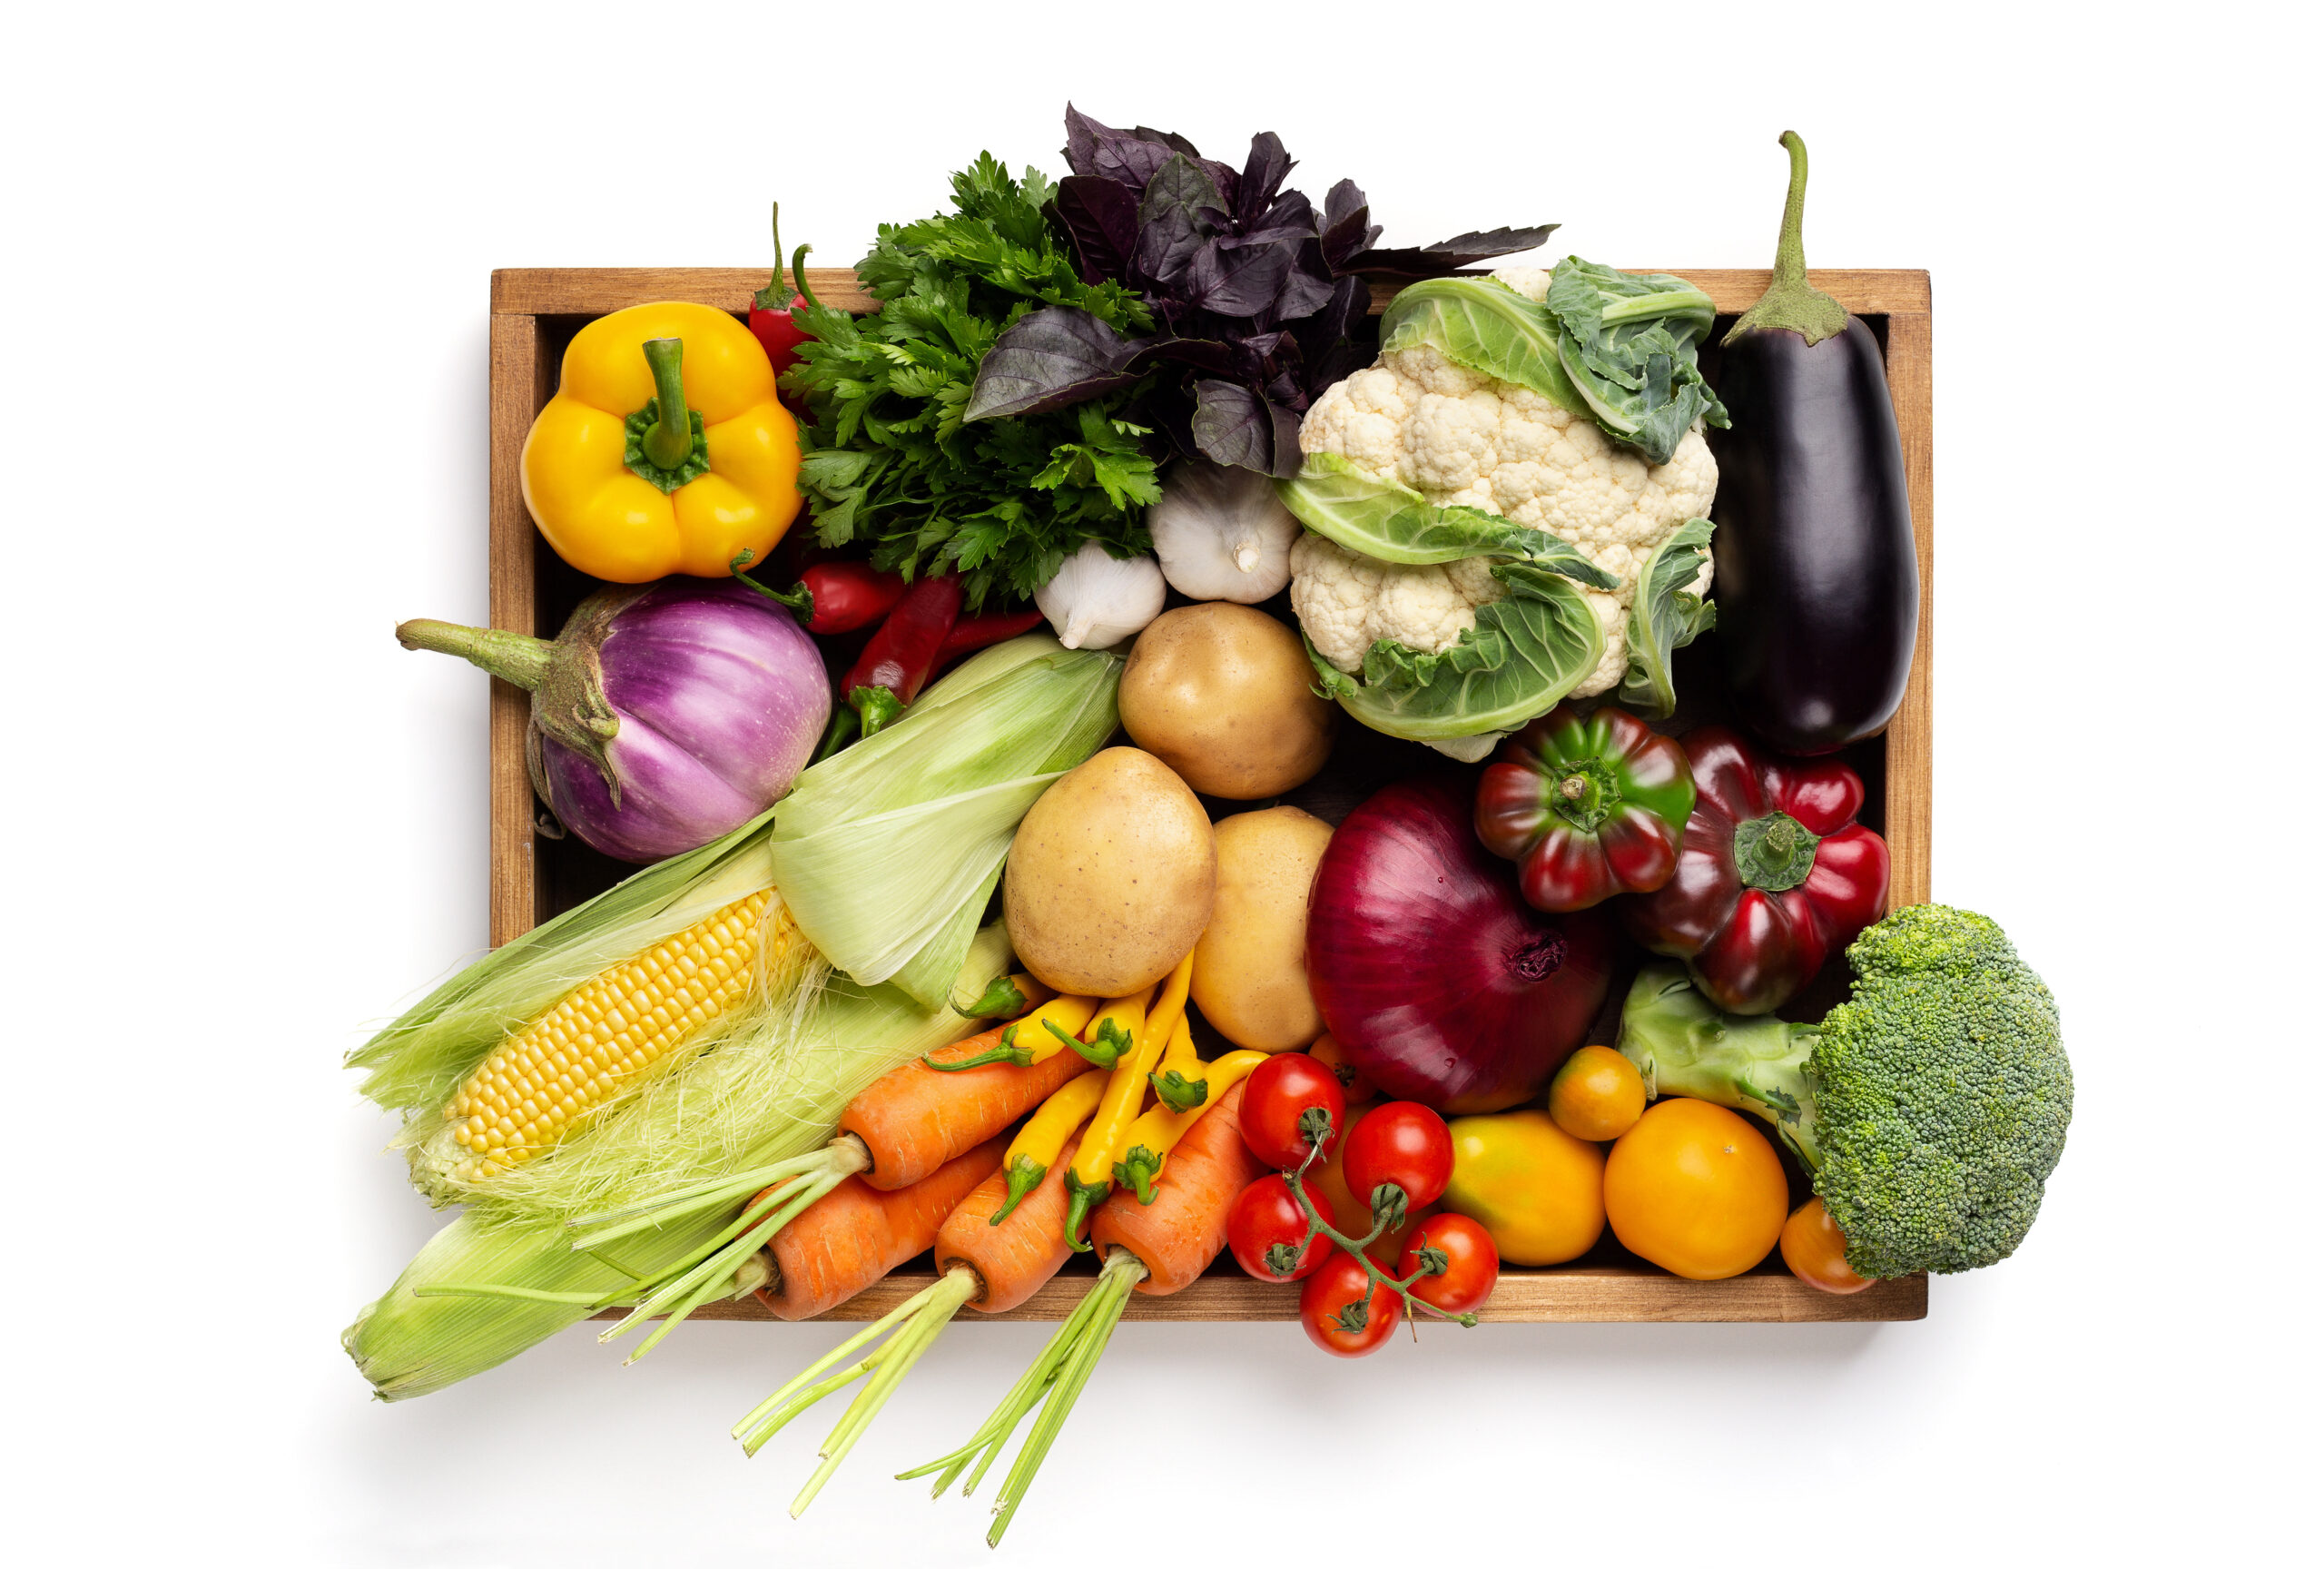 Healthy organic food. Fresh vegetables assortment in wooden box on white background, top view